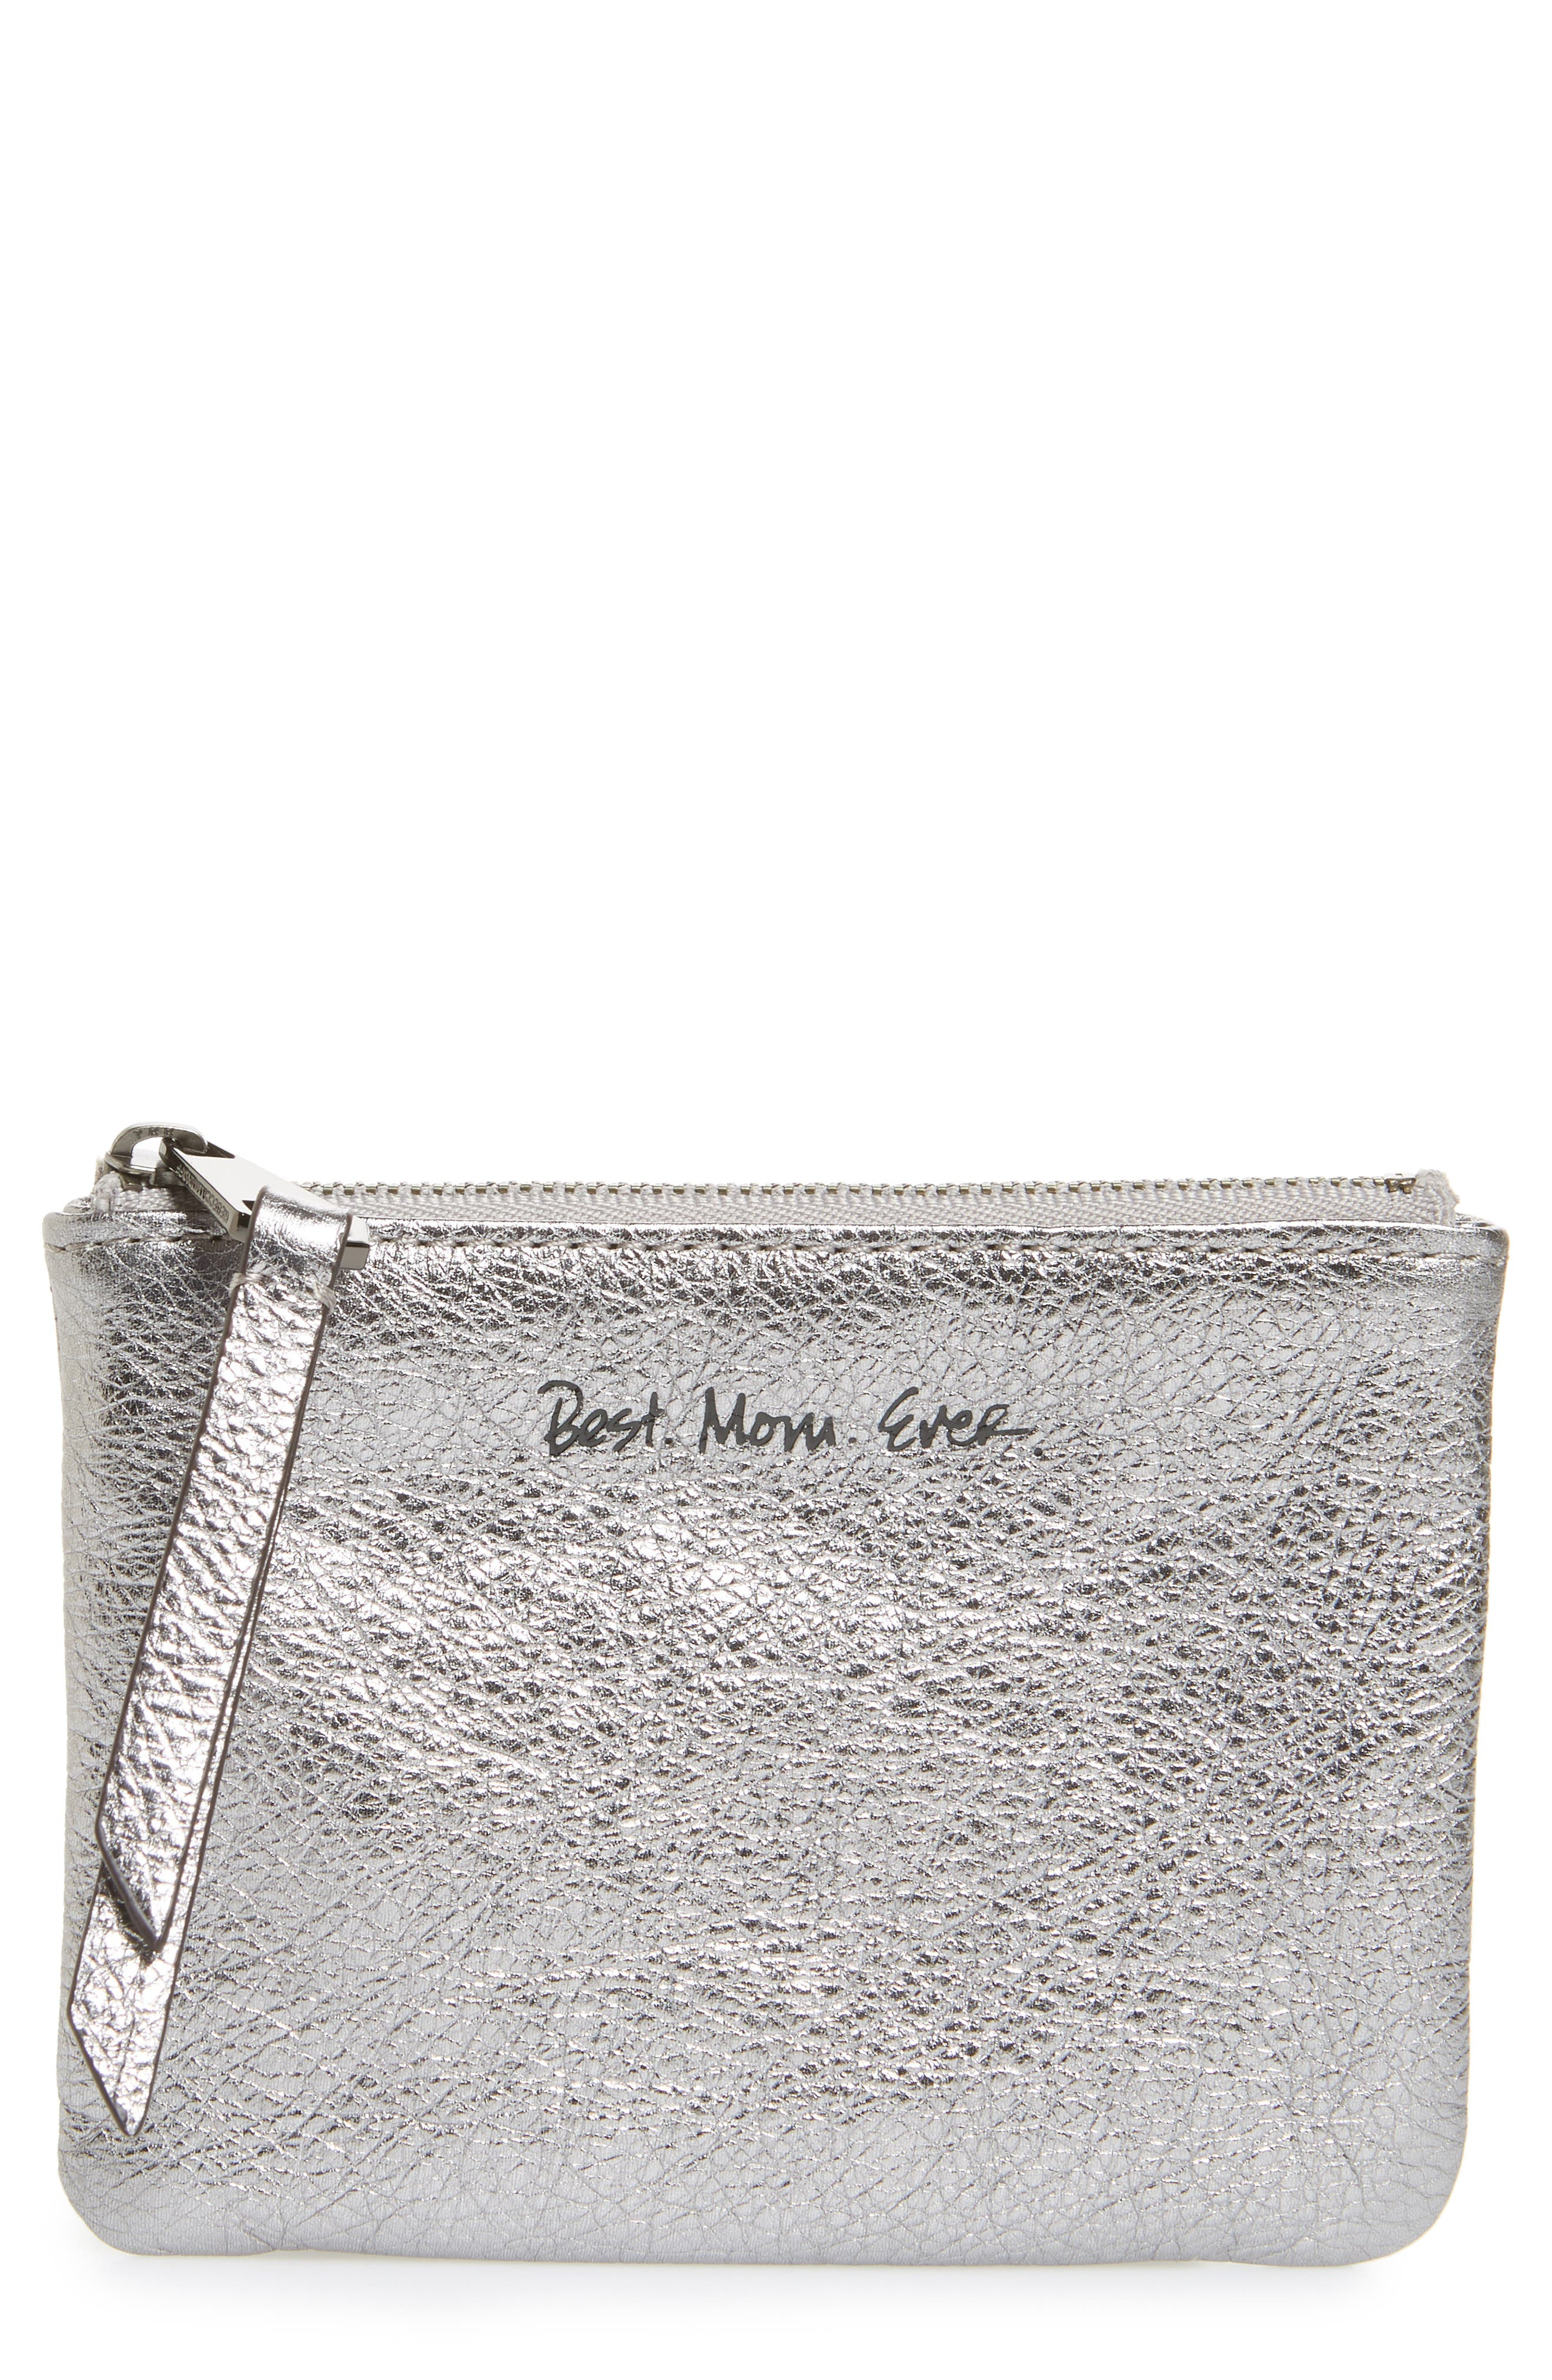 Betty - Best Mom Ever Leather Pouch,                         Main,                         color, 041